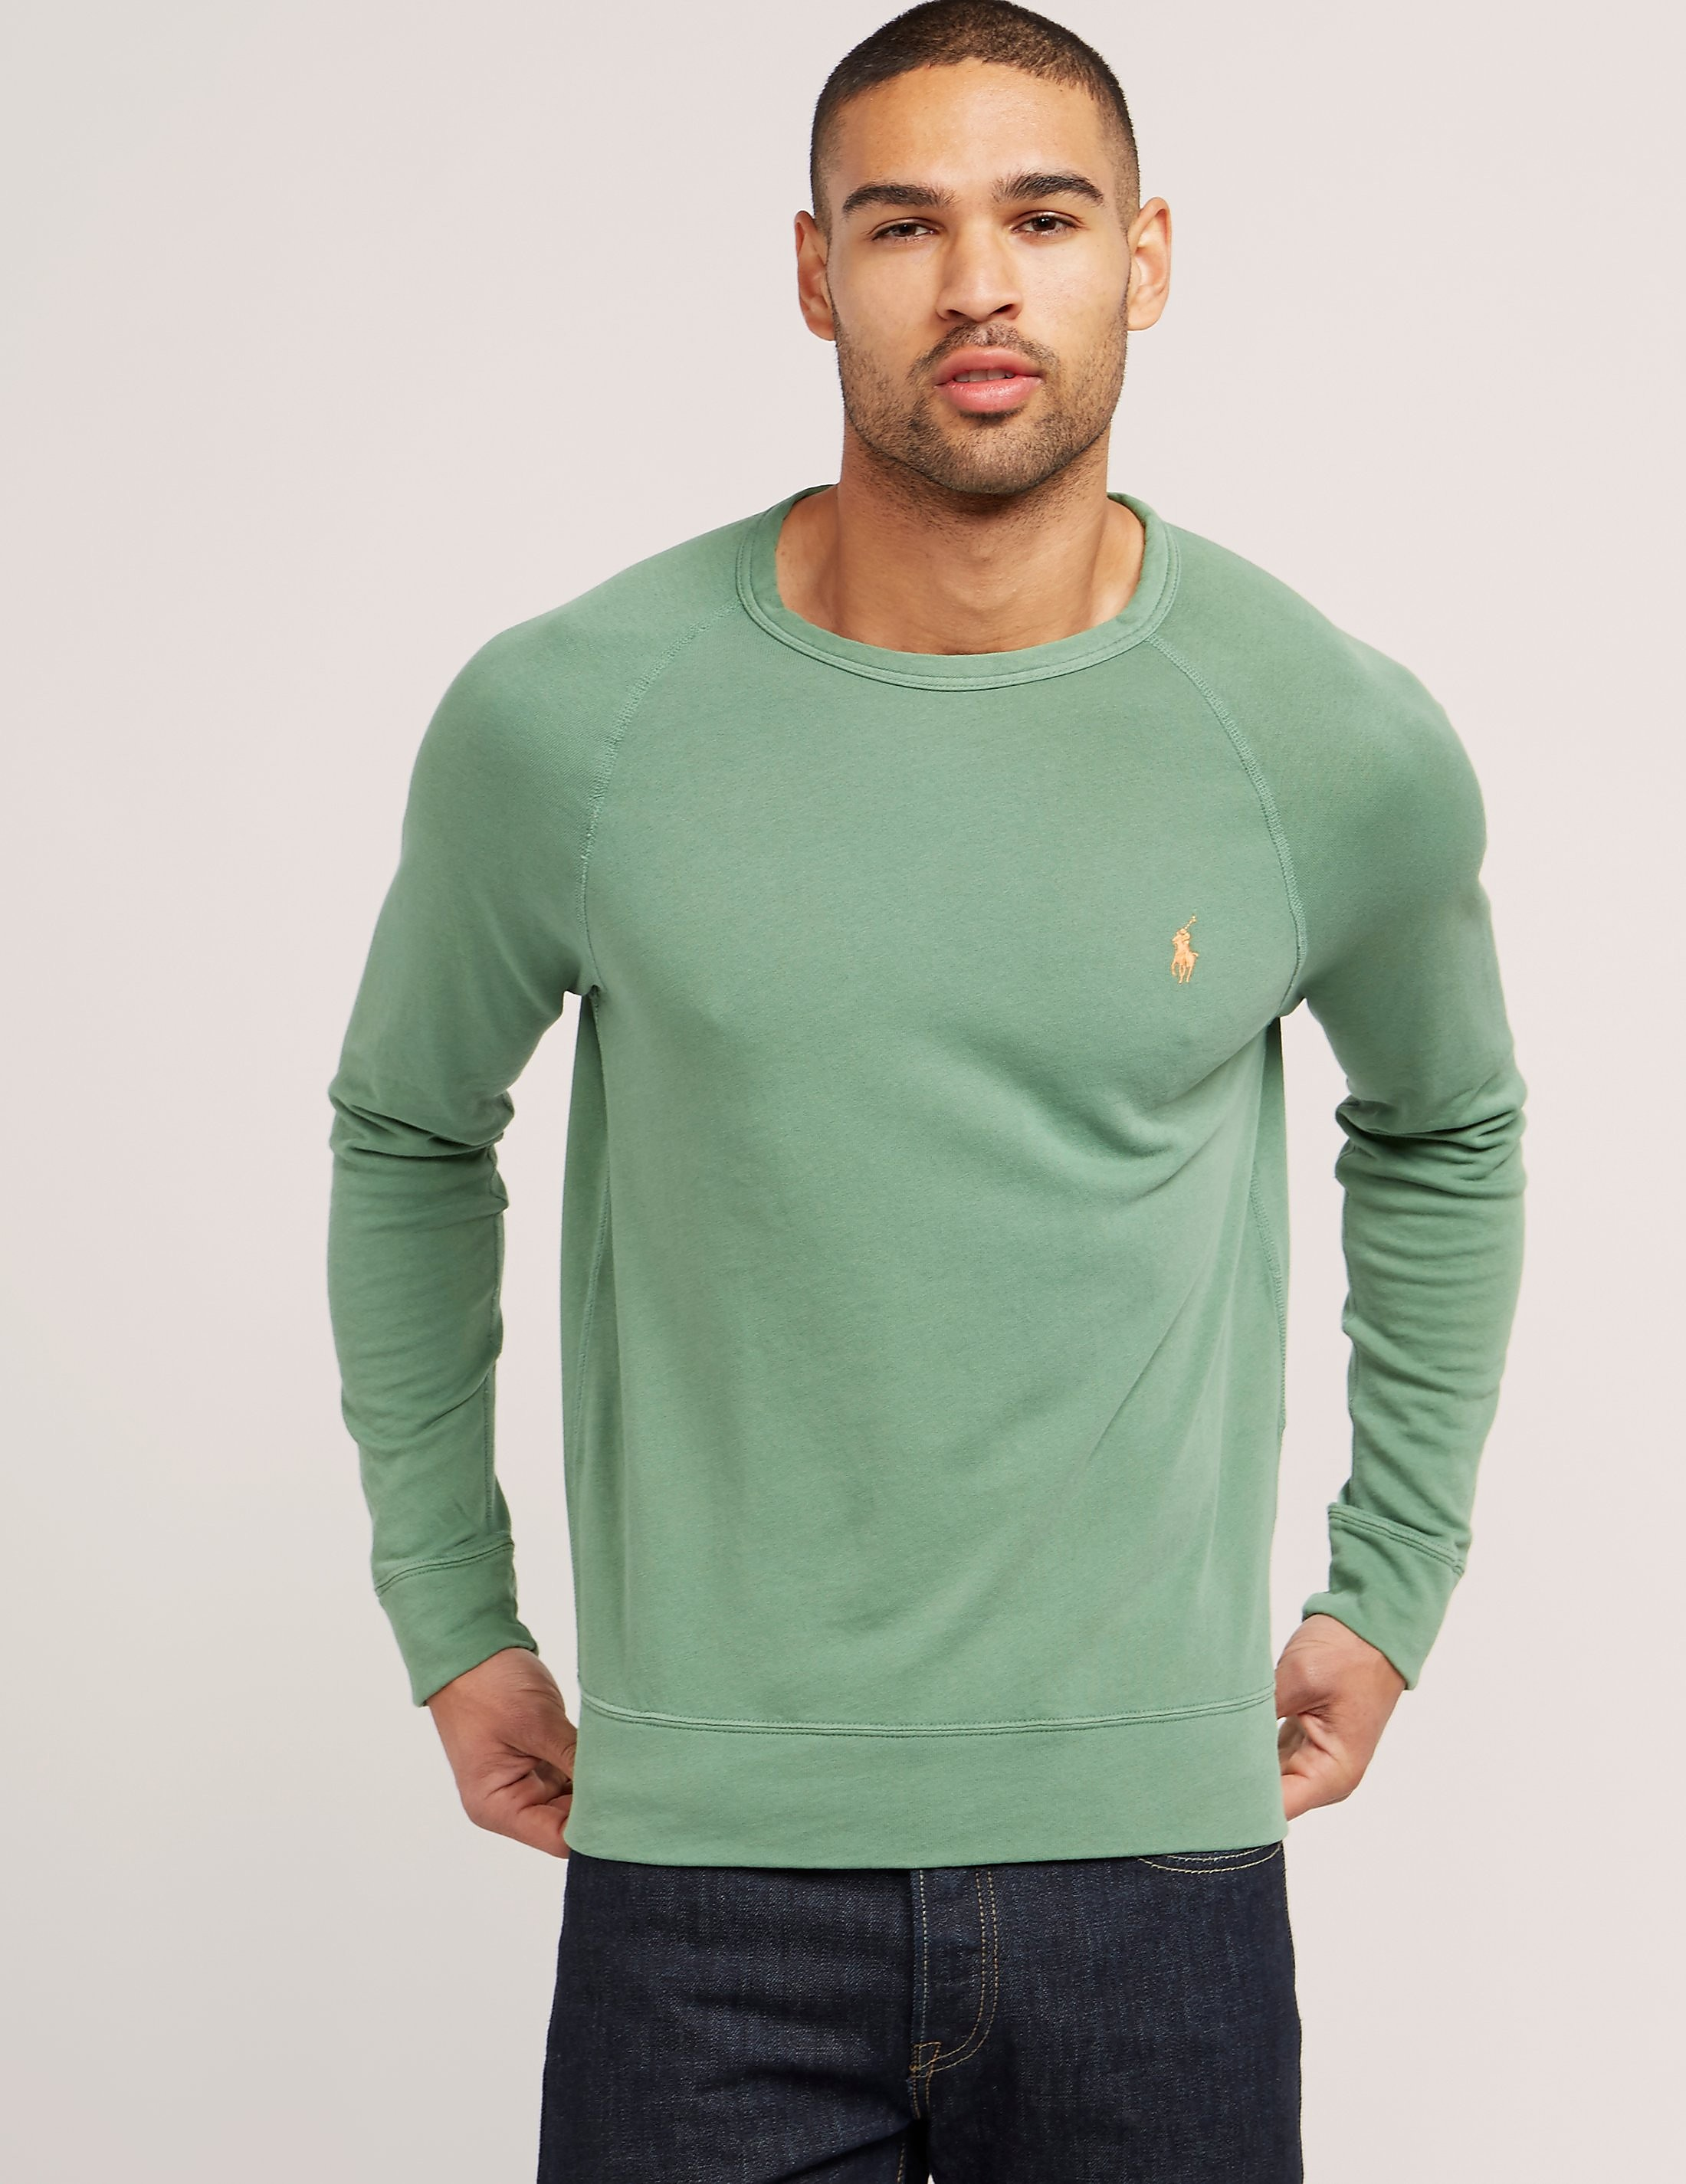 Polo Ralph Lauren Cotton Terry Sweatshirt